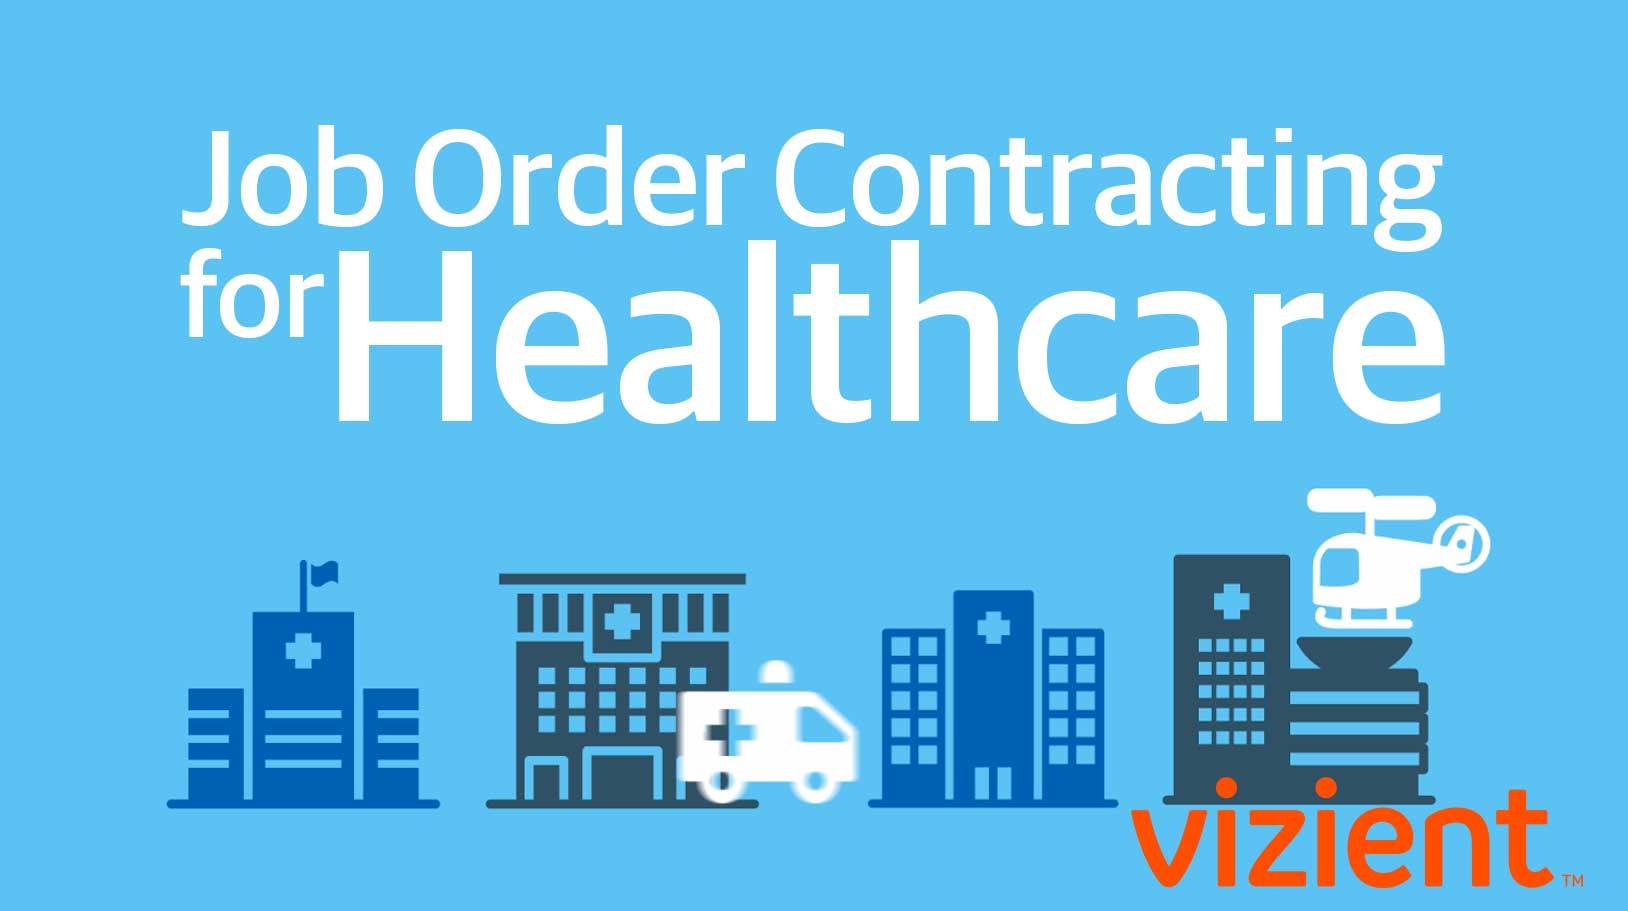 job order contracting for healthcare